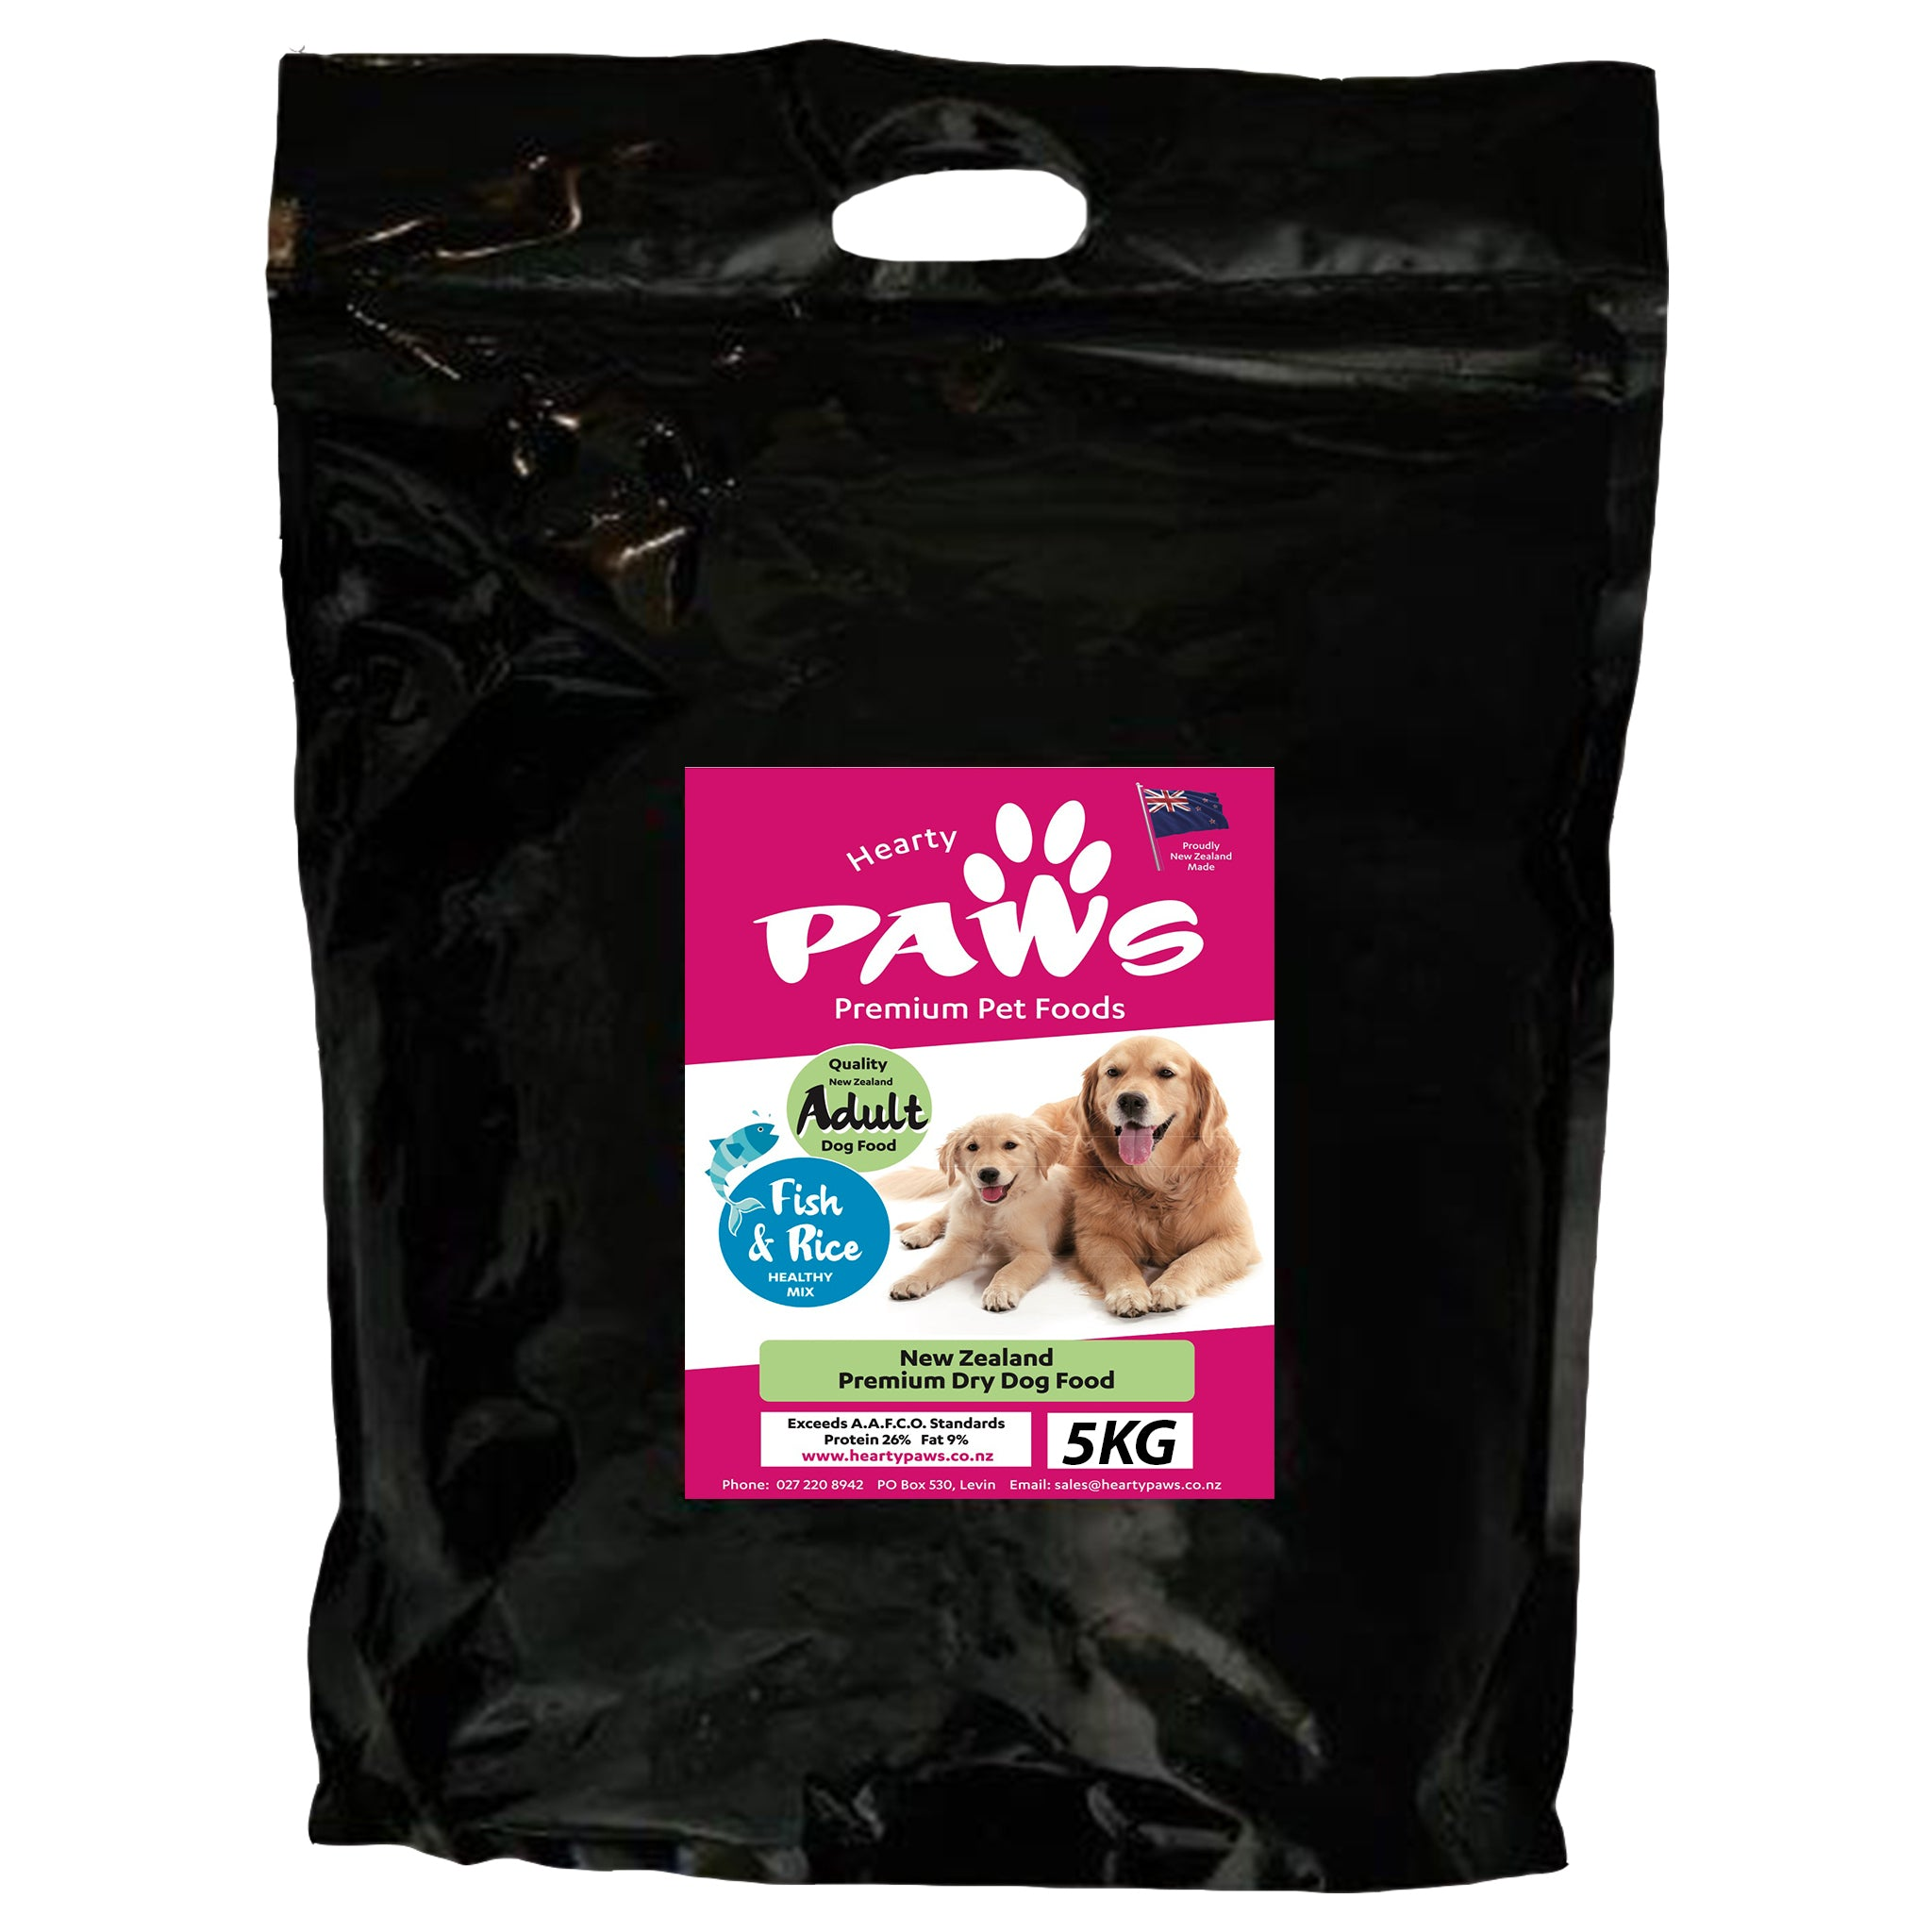 NZ Premium Dry Dog Food - 5kg Fish Adult